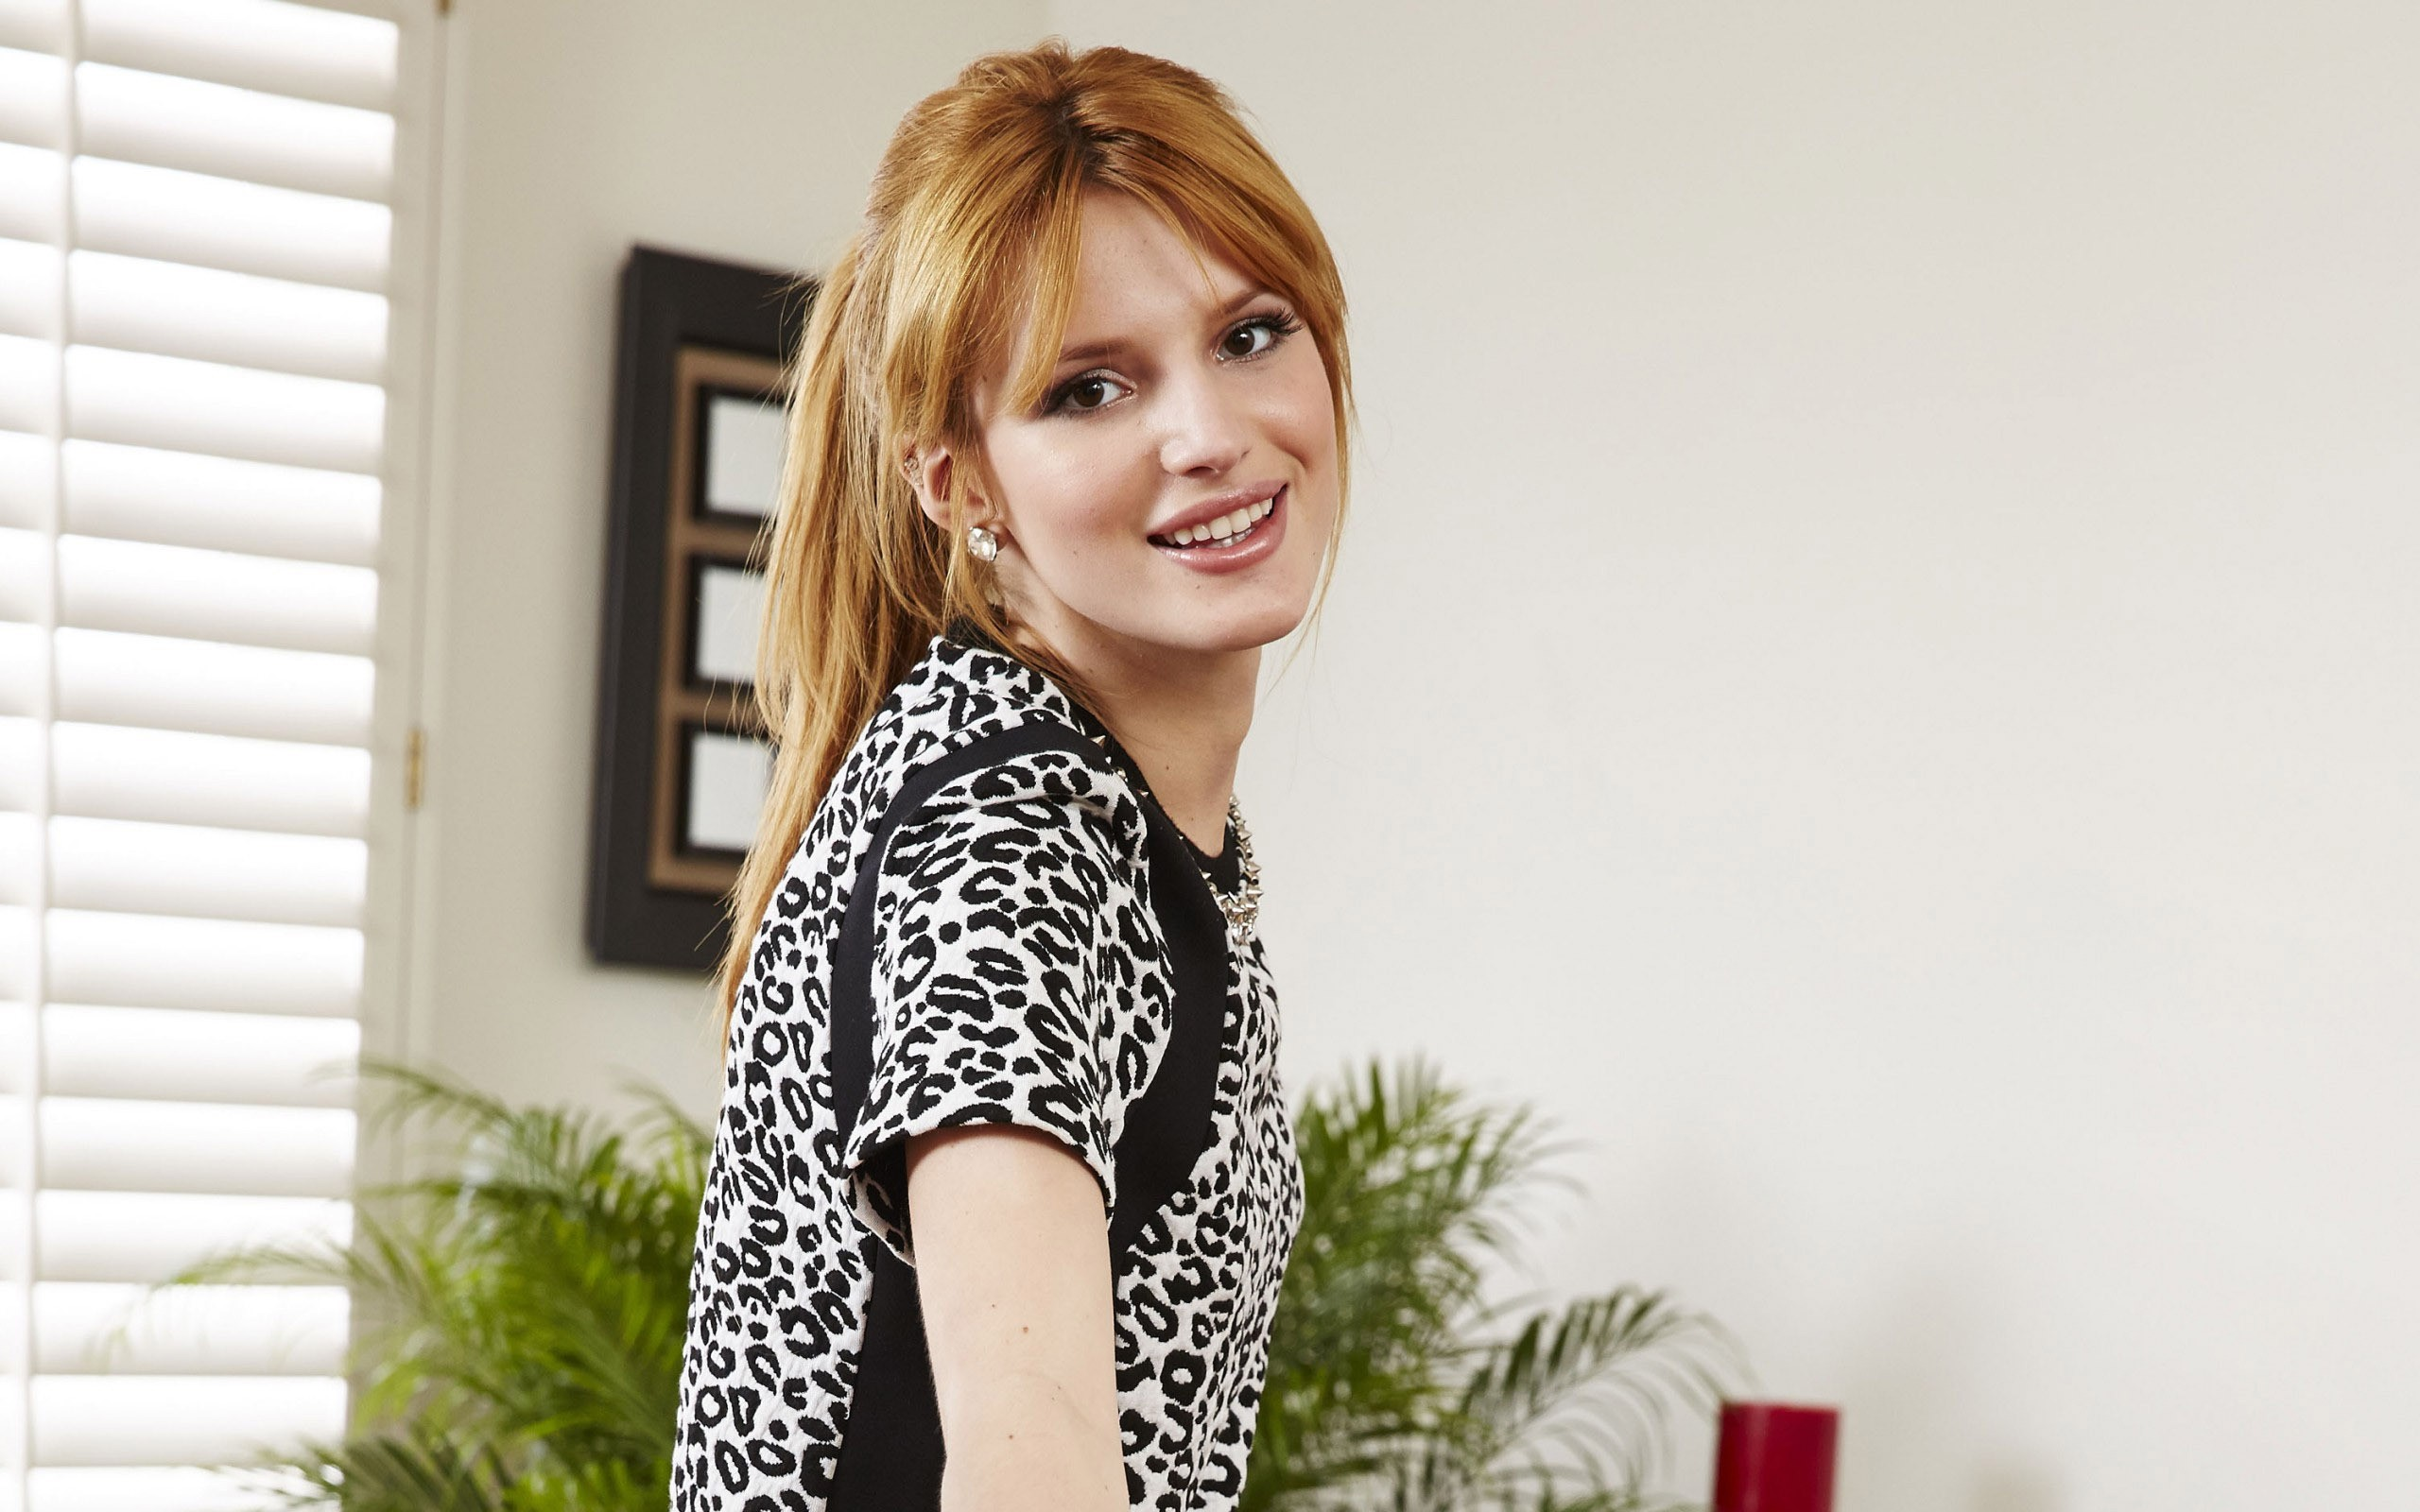 2560x1600 - Bella Thorne Wallpapers 13